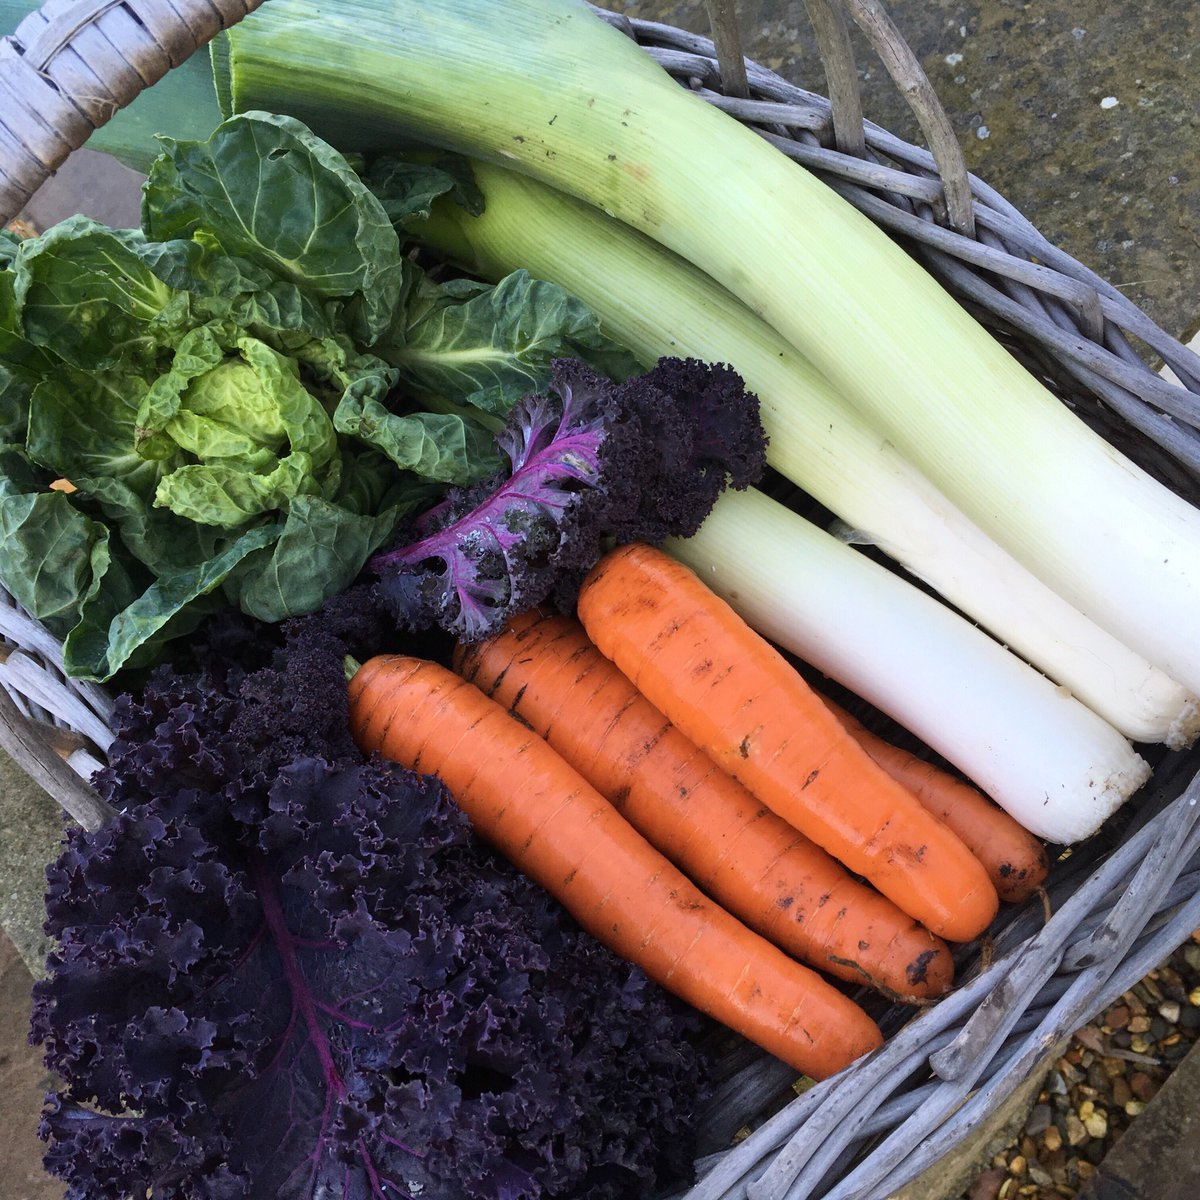 #vegetables fresh from the garden for this evening's meal. Leeks, kale, carrots & Brussels tops!  #Homegrown<br>http://pic.twitter.com/UNv6EpRE4J